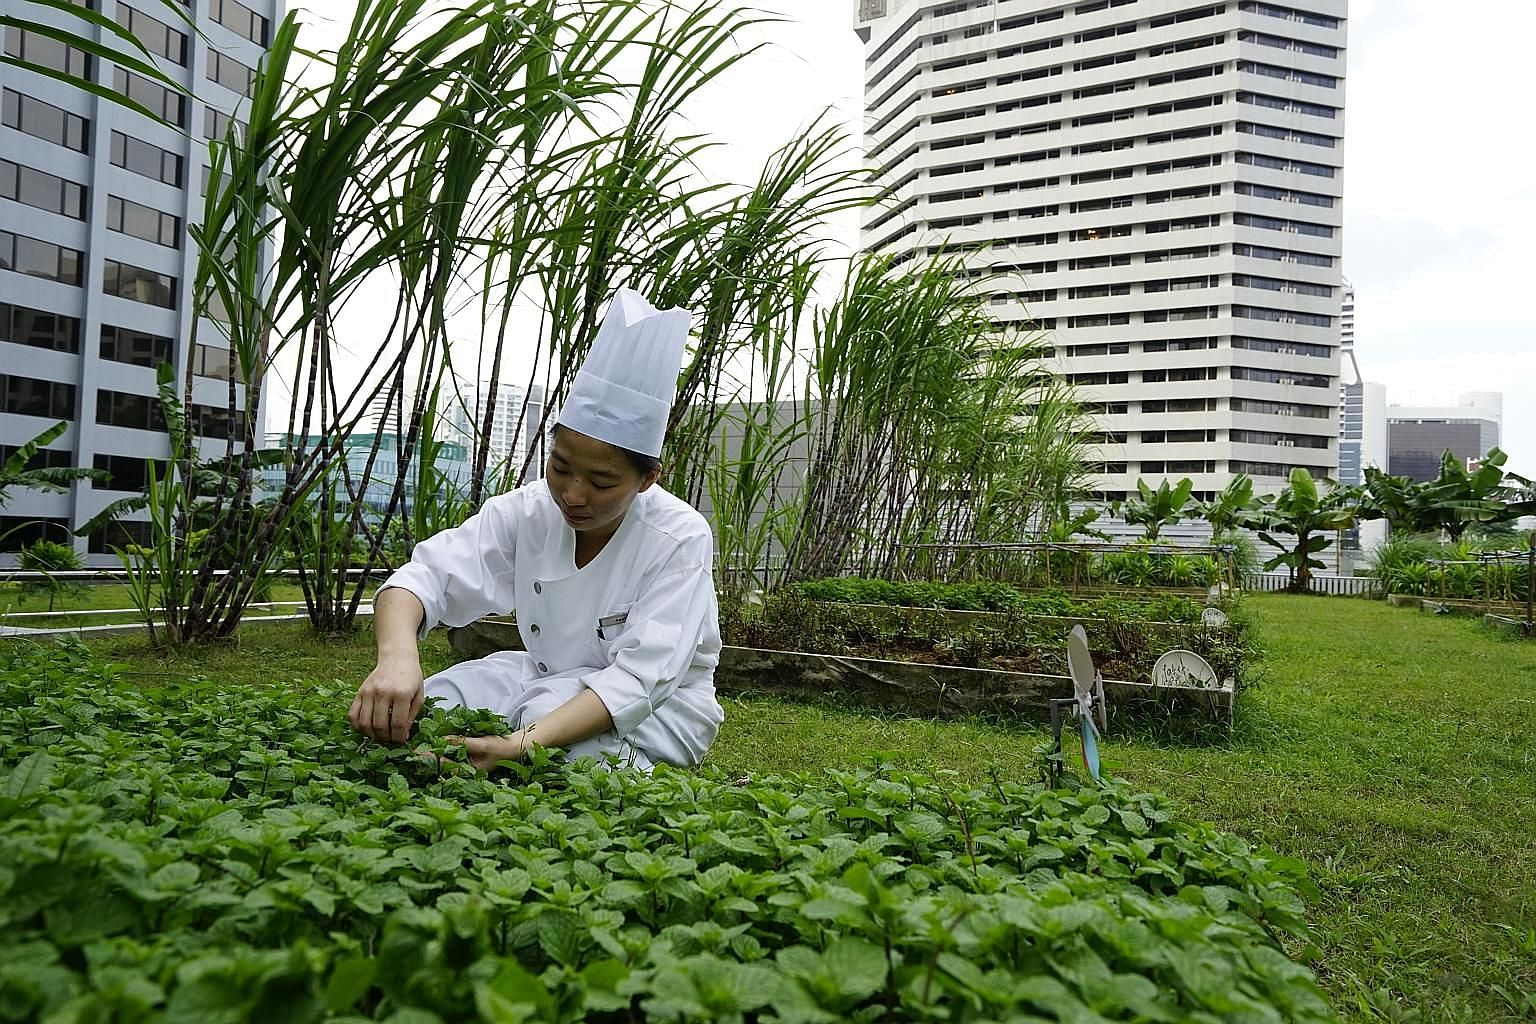 Horticulturist Chin Ai Ling passing a box of mint leaves harvested from One Farrer Hotel's urban farm to a chef to be used as ingredients. The Stamford Brasserie restaurant recently launched a baked tilapia dish, whose ingredients are sourced from it